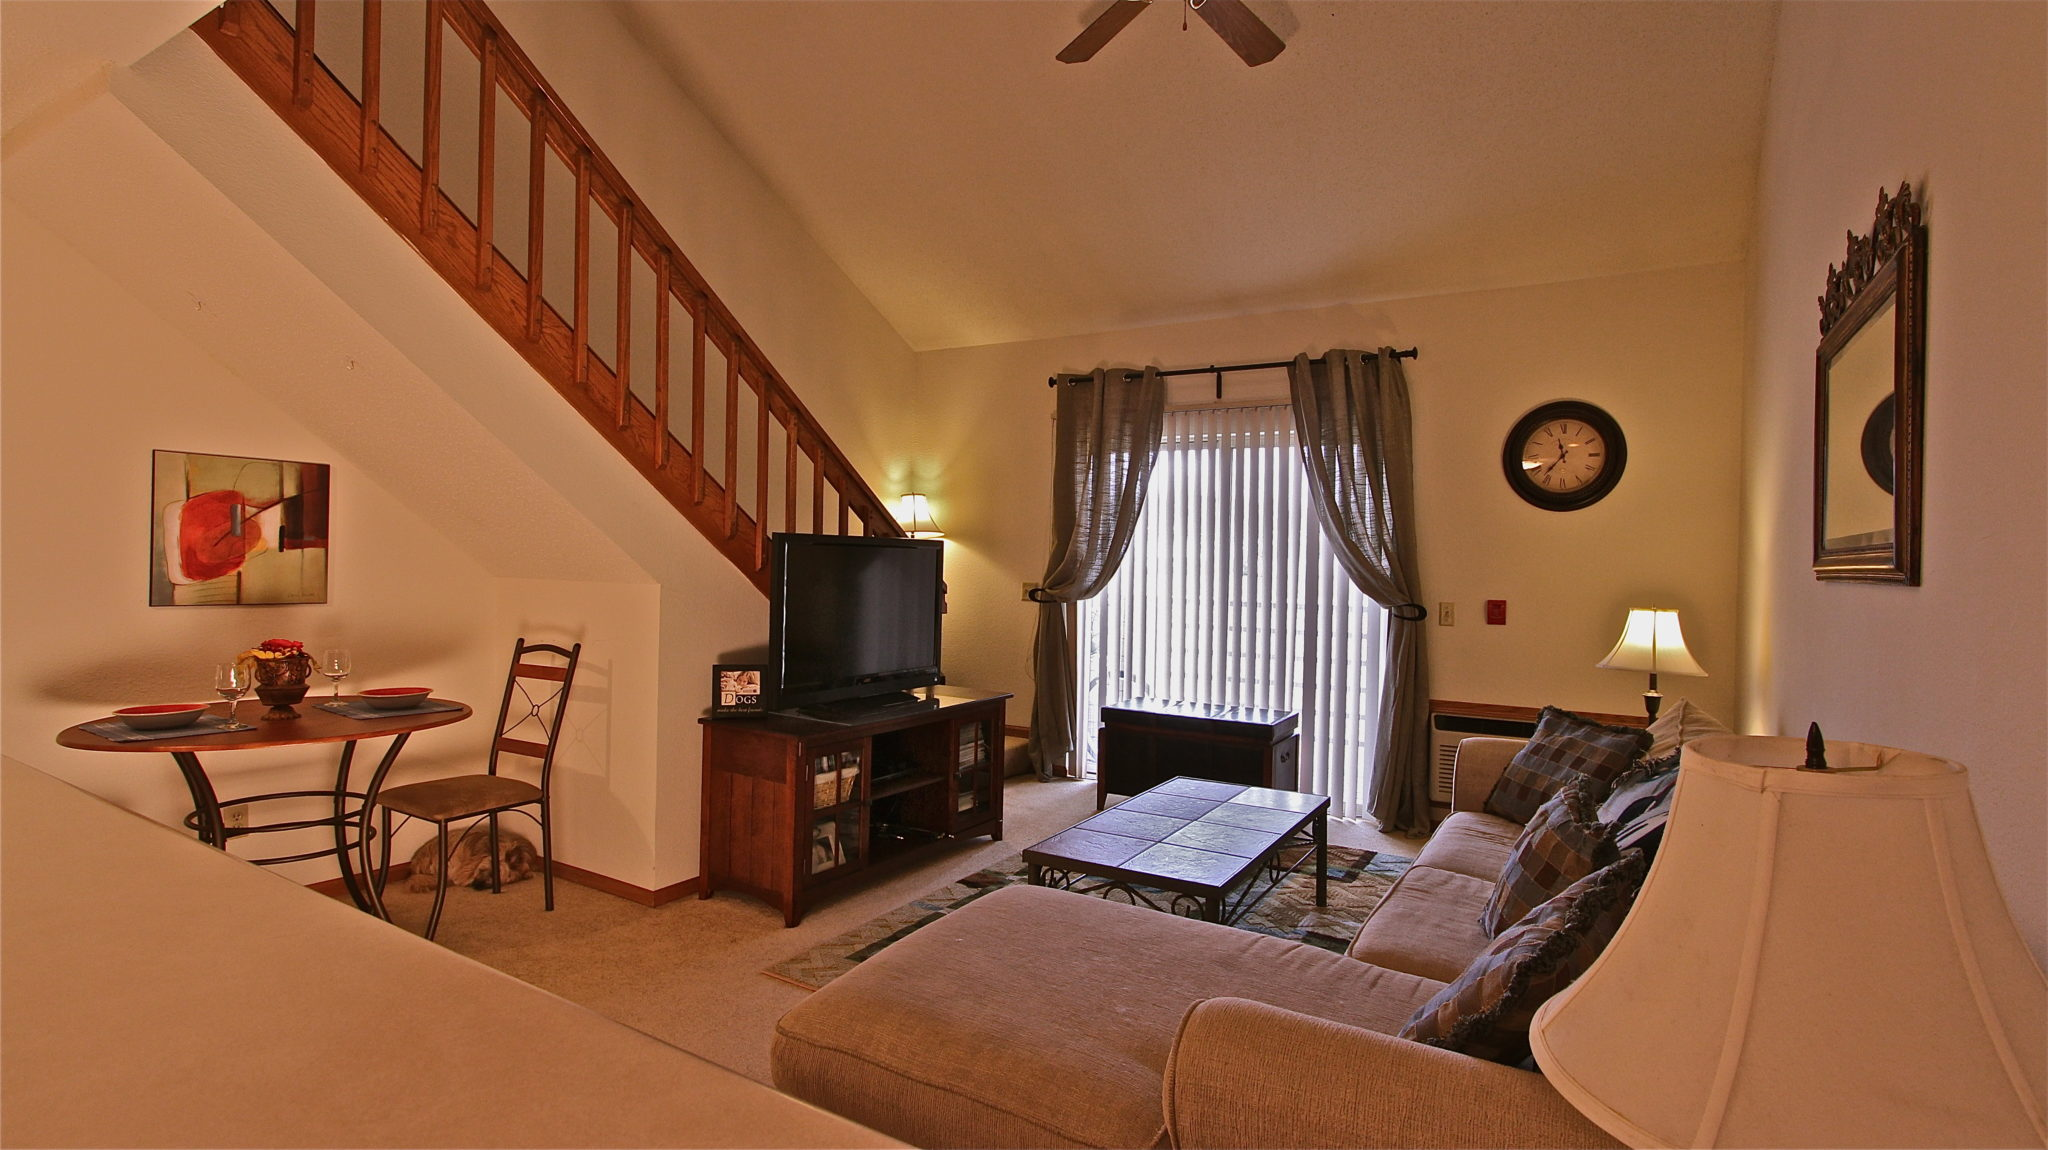 Franklin apartments for rent at fairway meadows in franklin wisconsin for Milwaukee 1 bedroom apartments